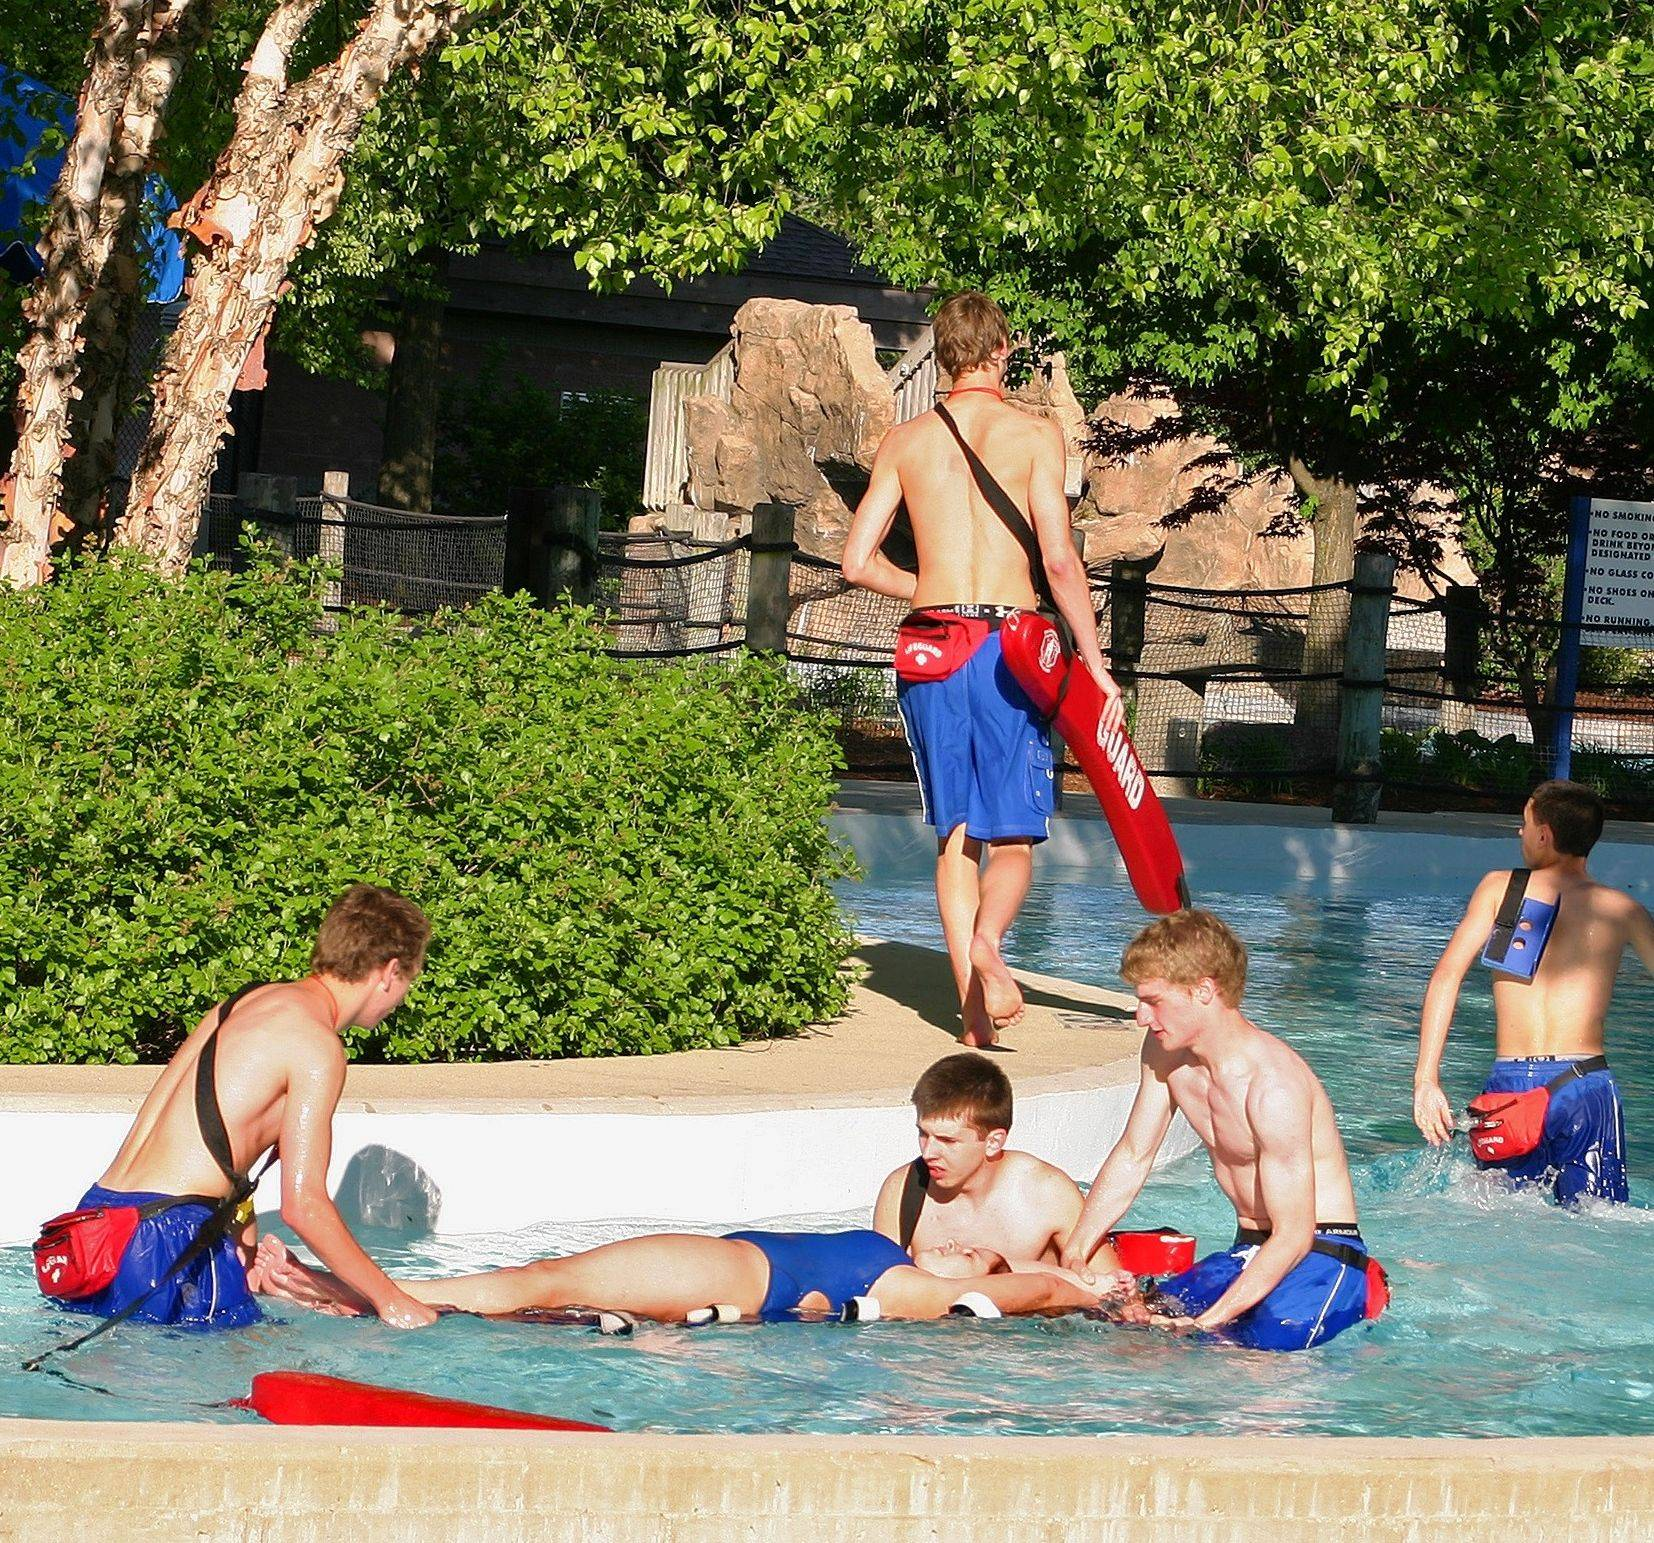 During in-service training before the 2011 pool season, lifeguards practice created emergency life-saving scenarios at Mystic Waters.